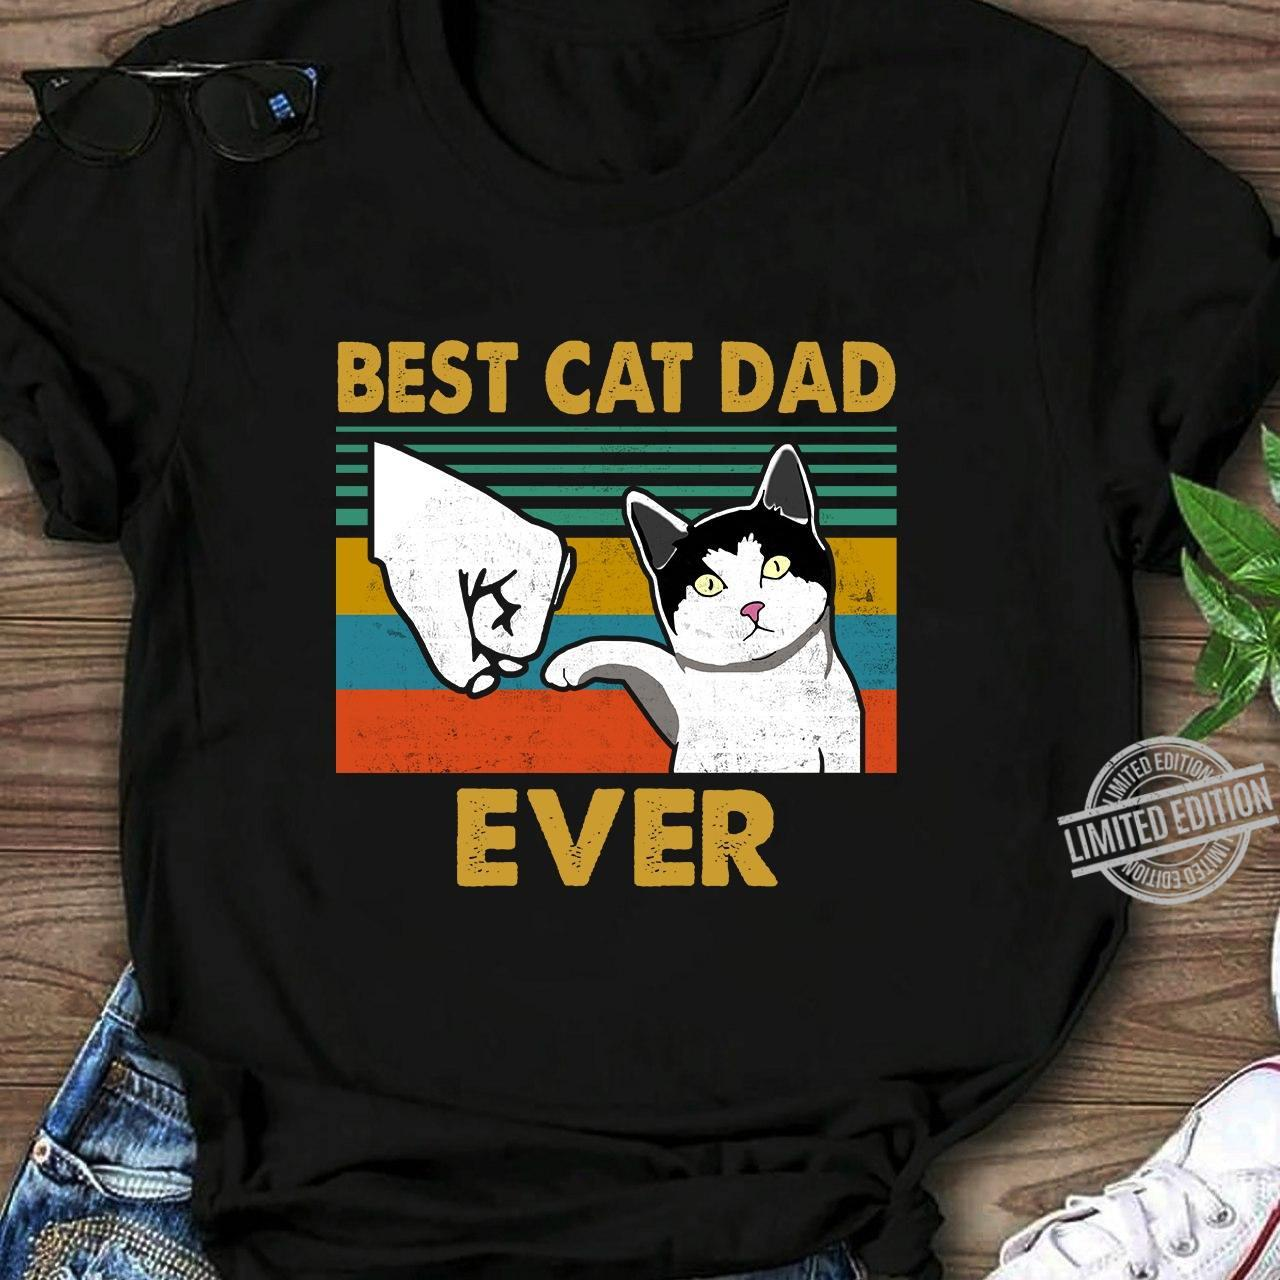 Amazon.com: Best Cat Dad Ever T-Shirt Funny Cat Daddy Father Day Gift T- Shirt: Clothing